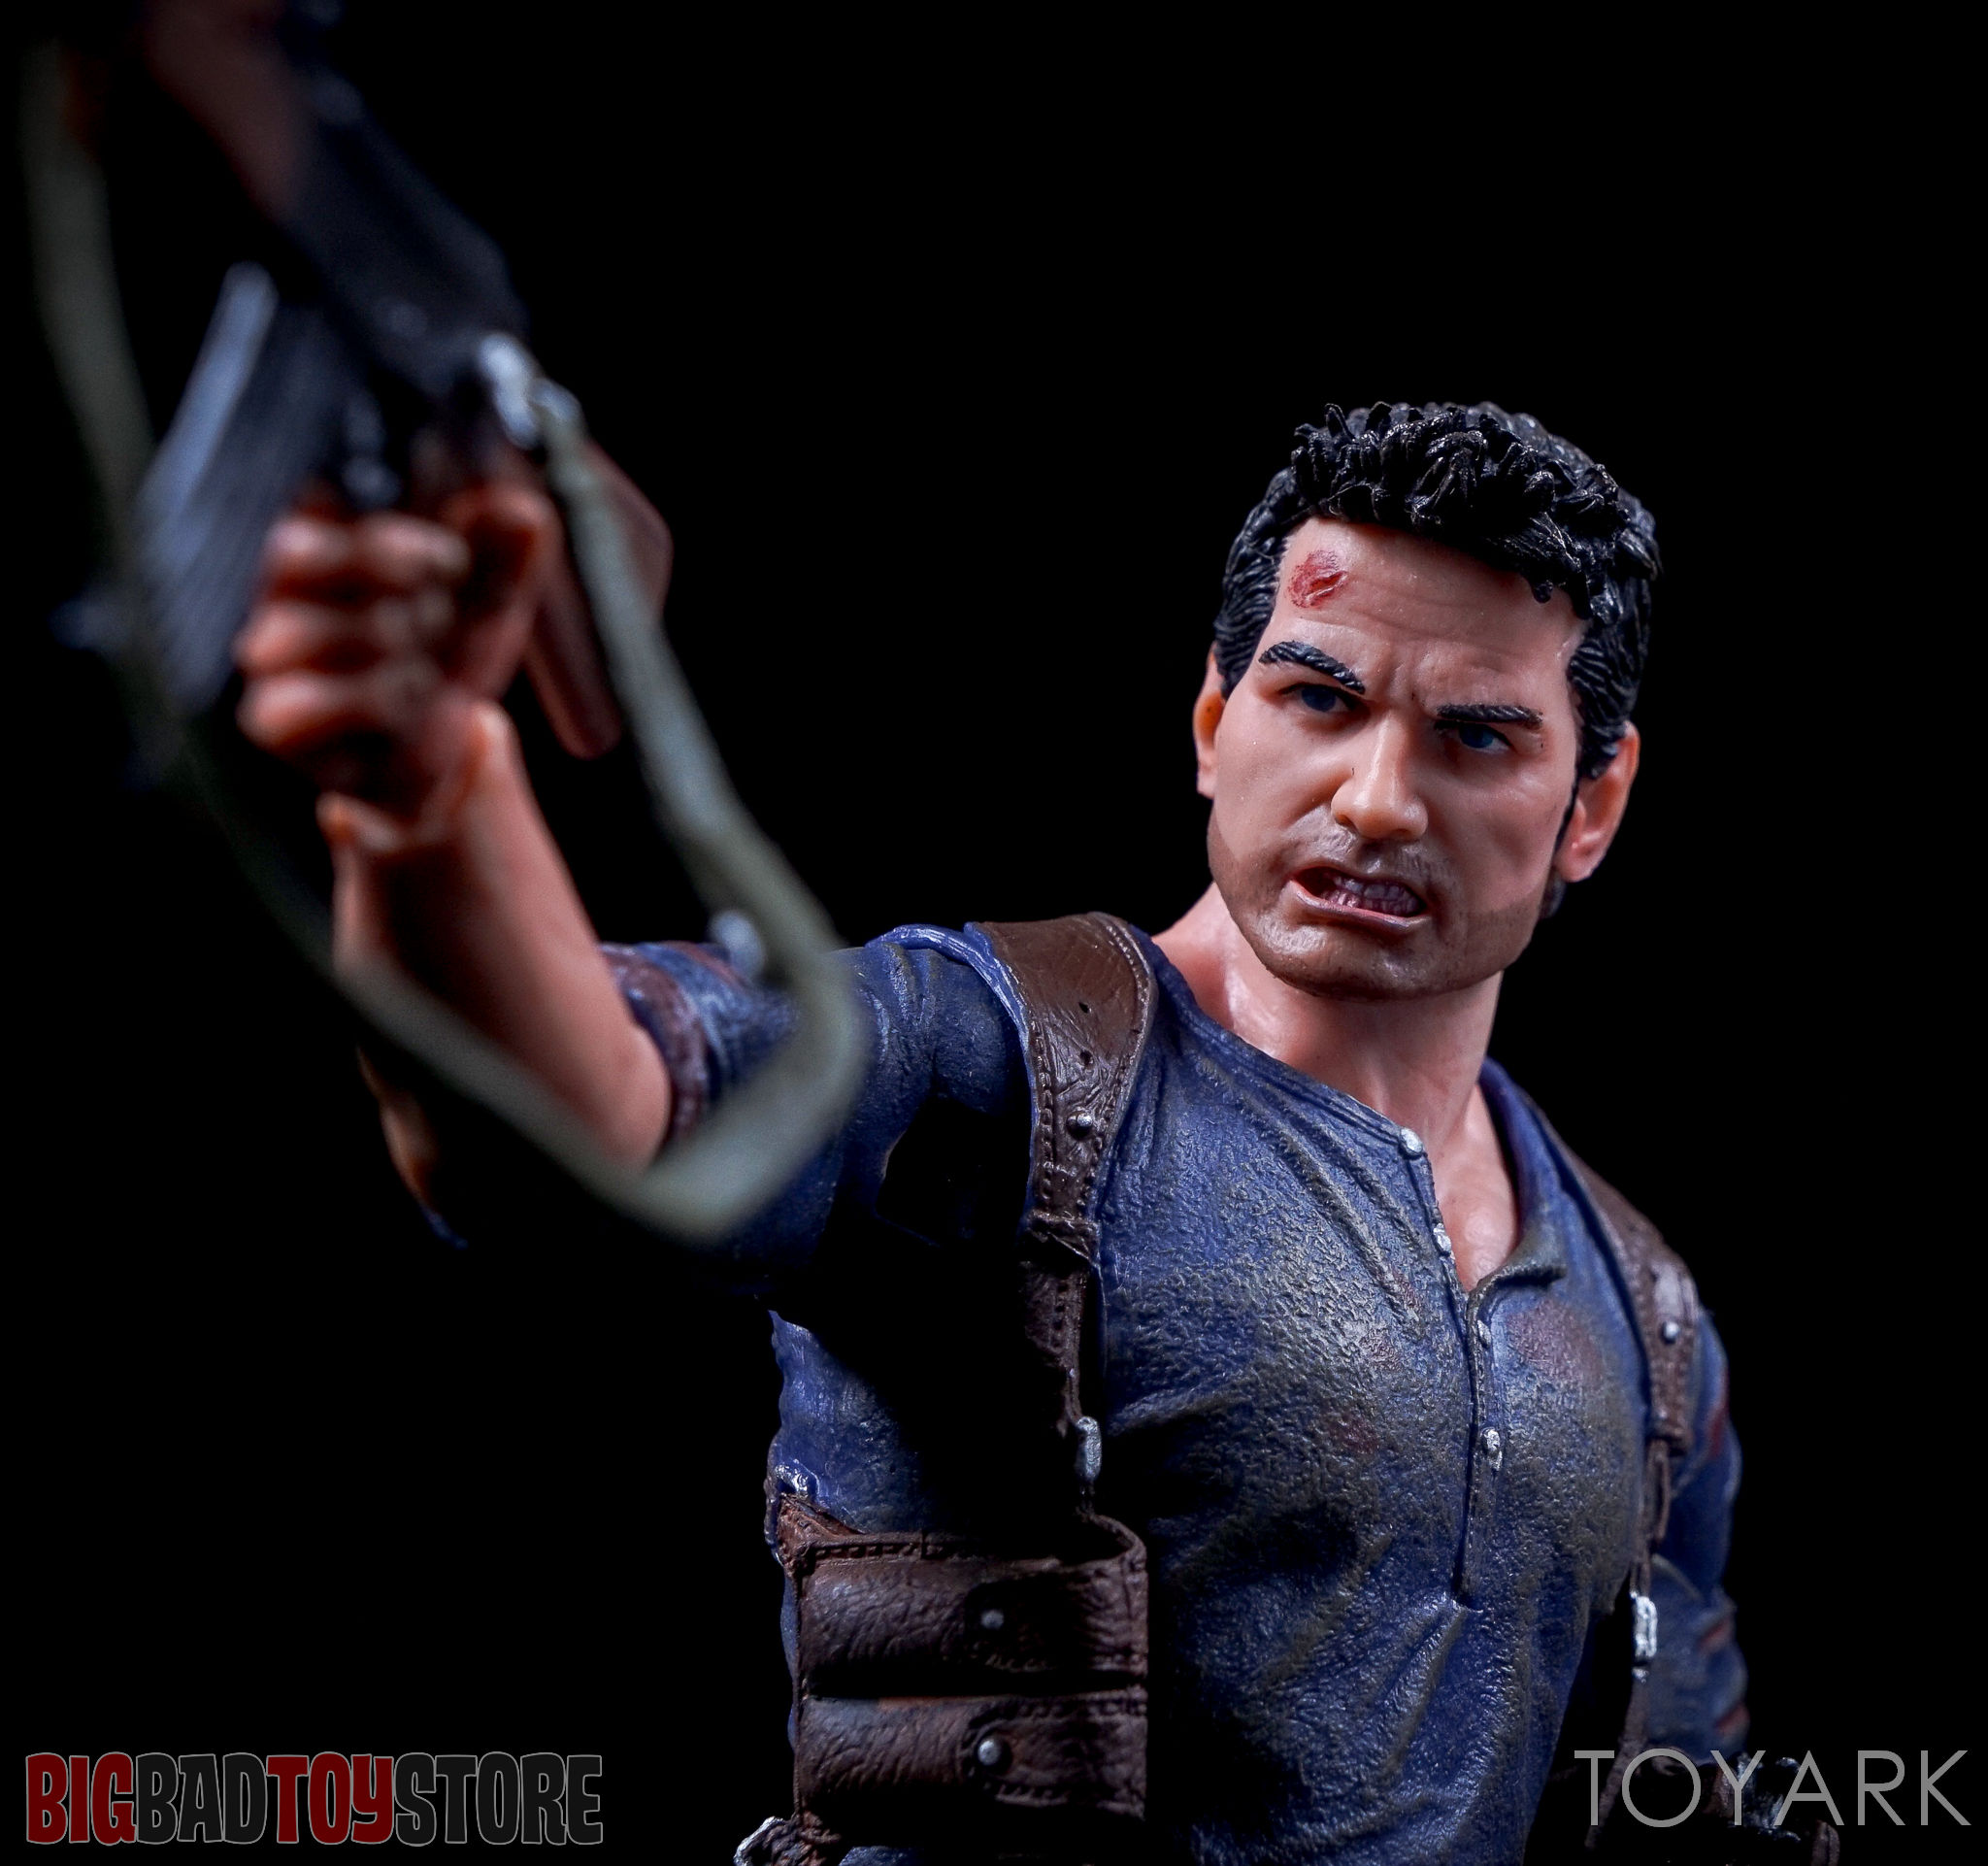 http://news.toyark.com/wp-content/uploads/sites/4/2016/09/NECA-Uncharted-4-Nathan-Drake-033.jpg